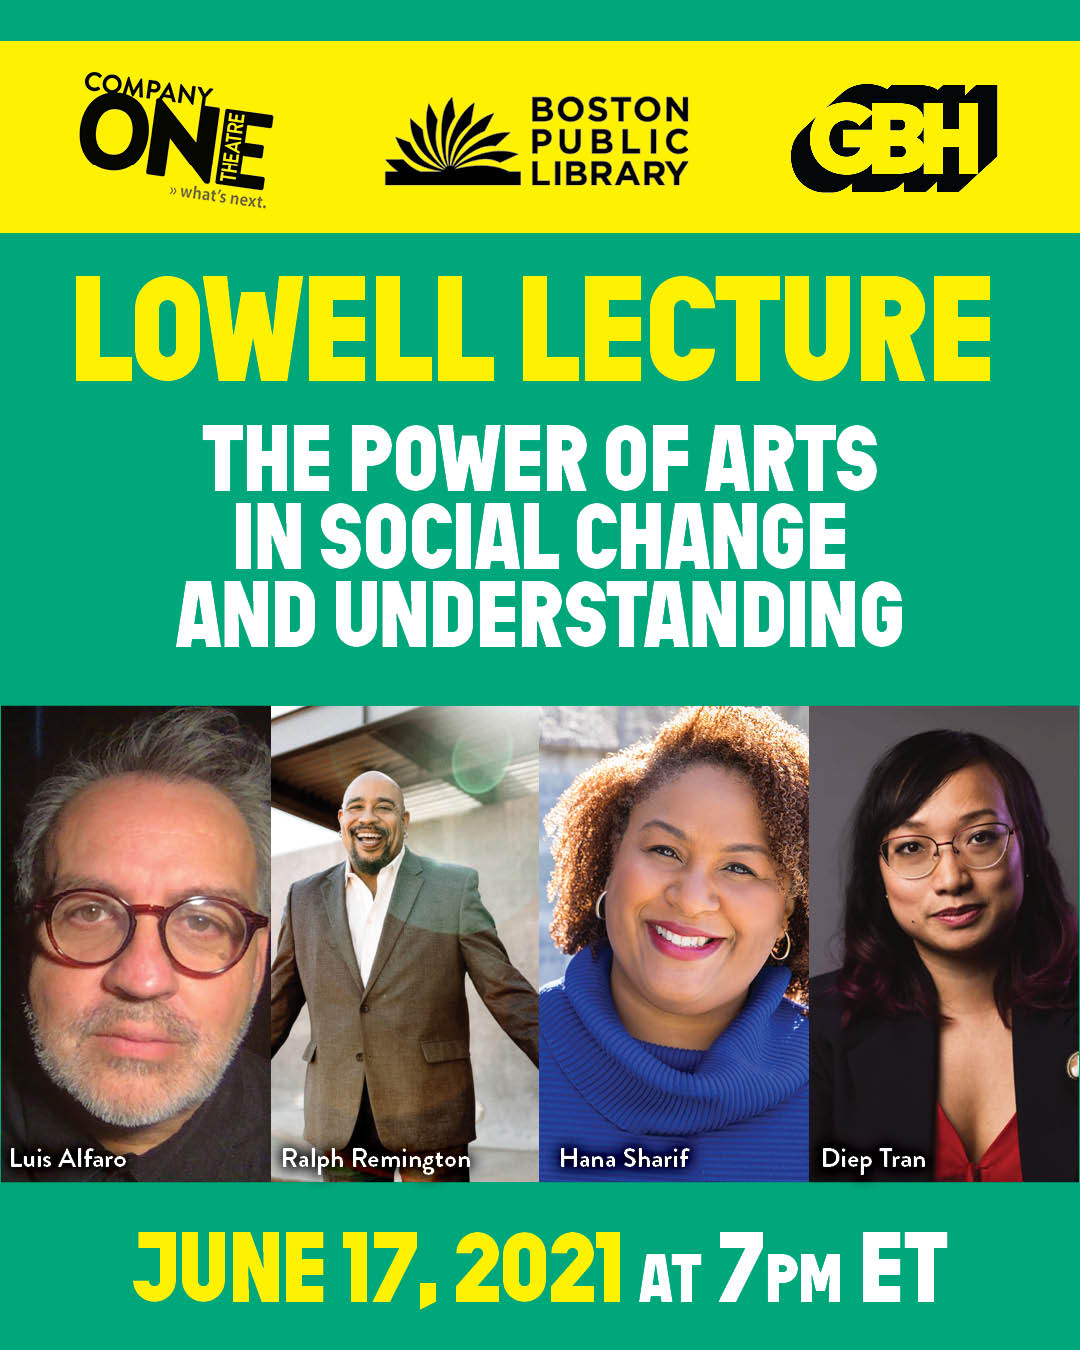 Lowell Lecutre: The Power of Arts in Social Change and Understanding